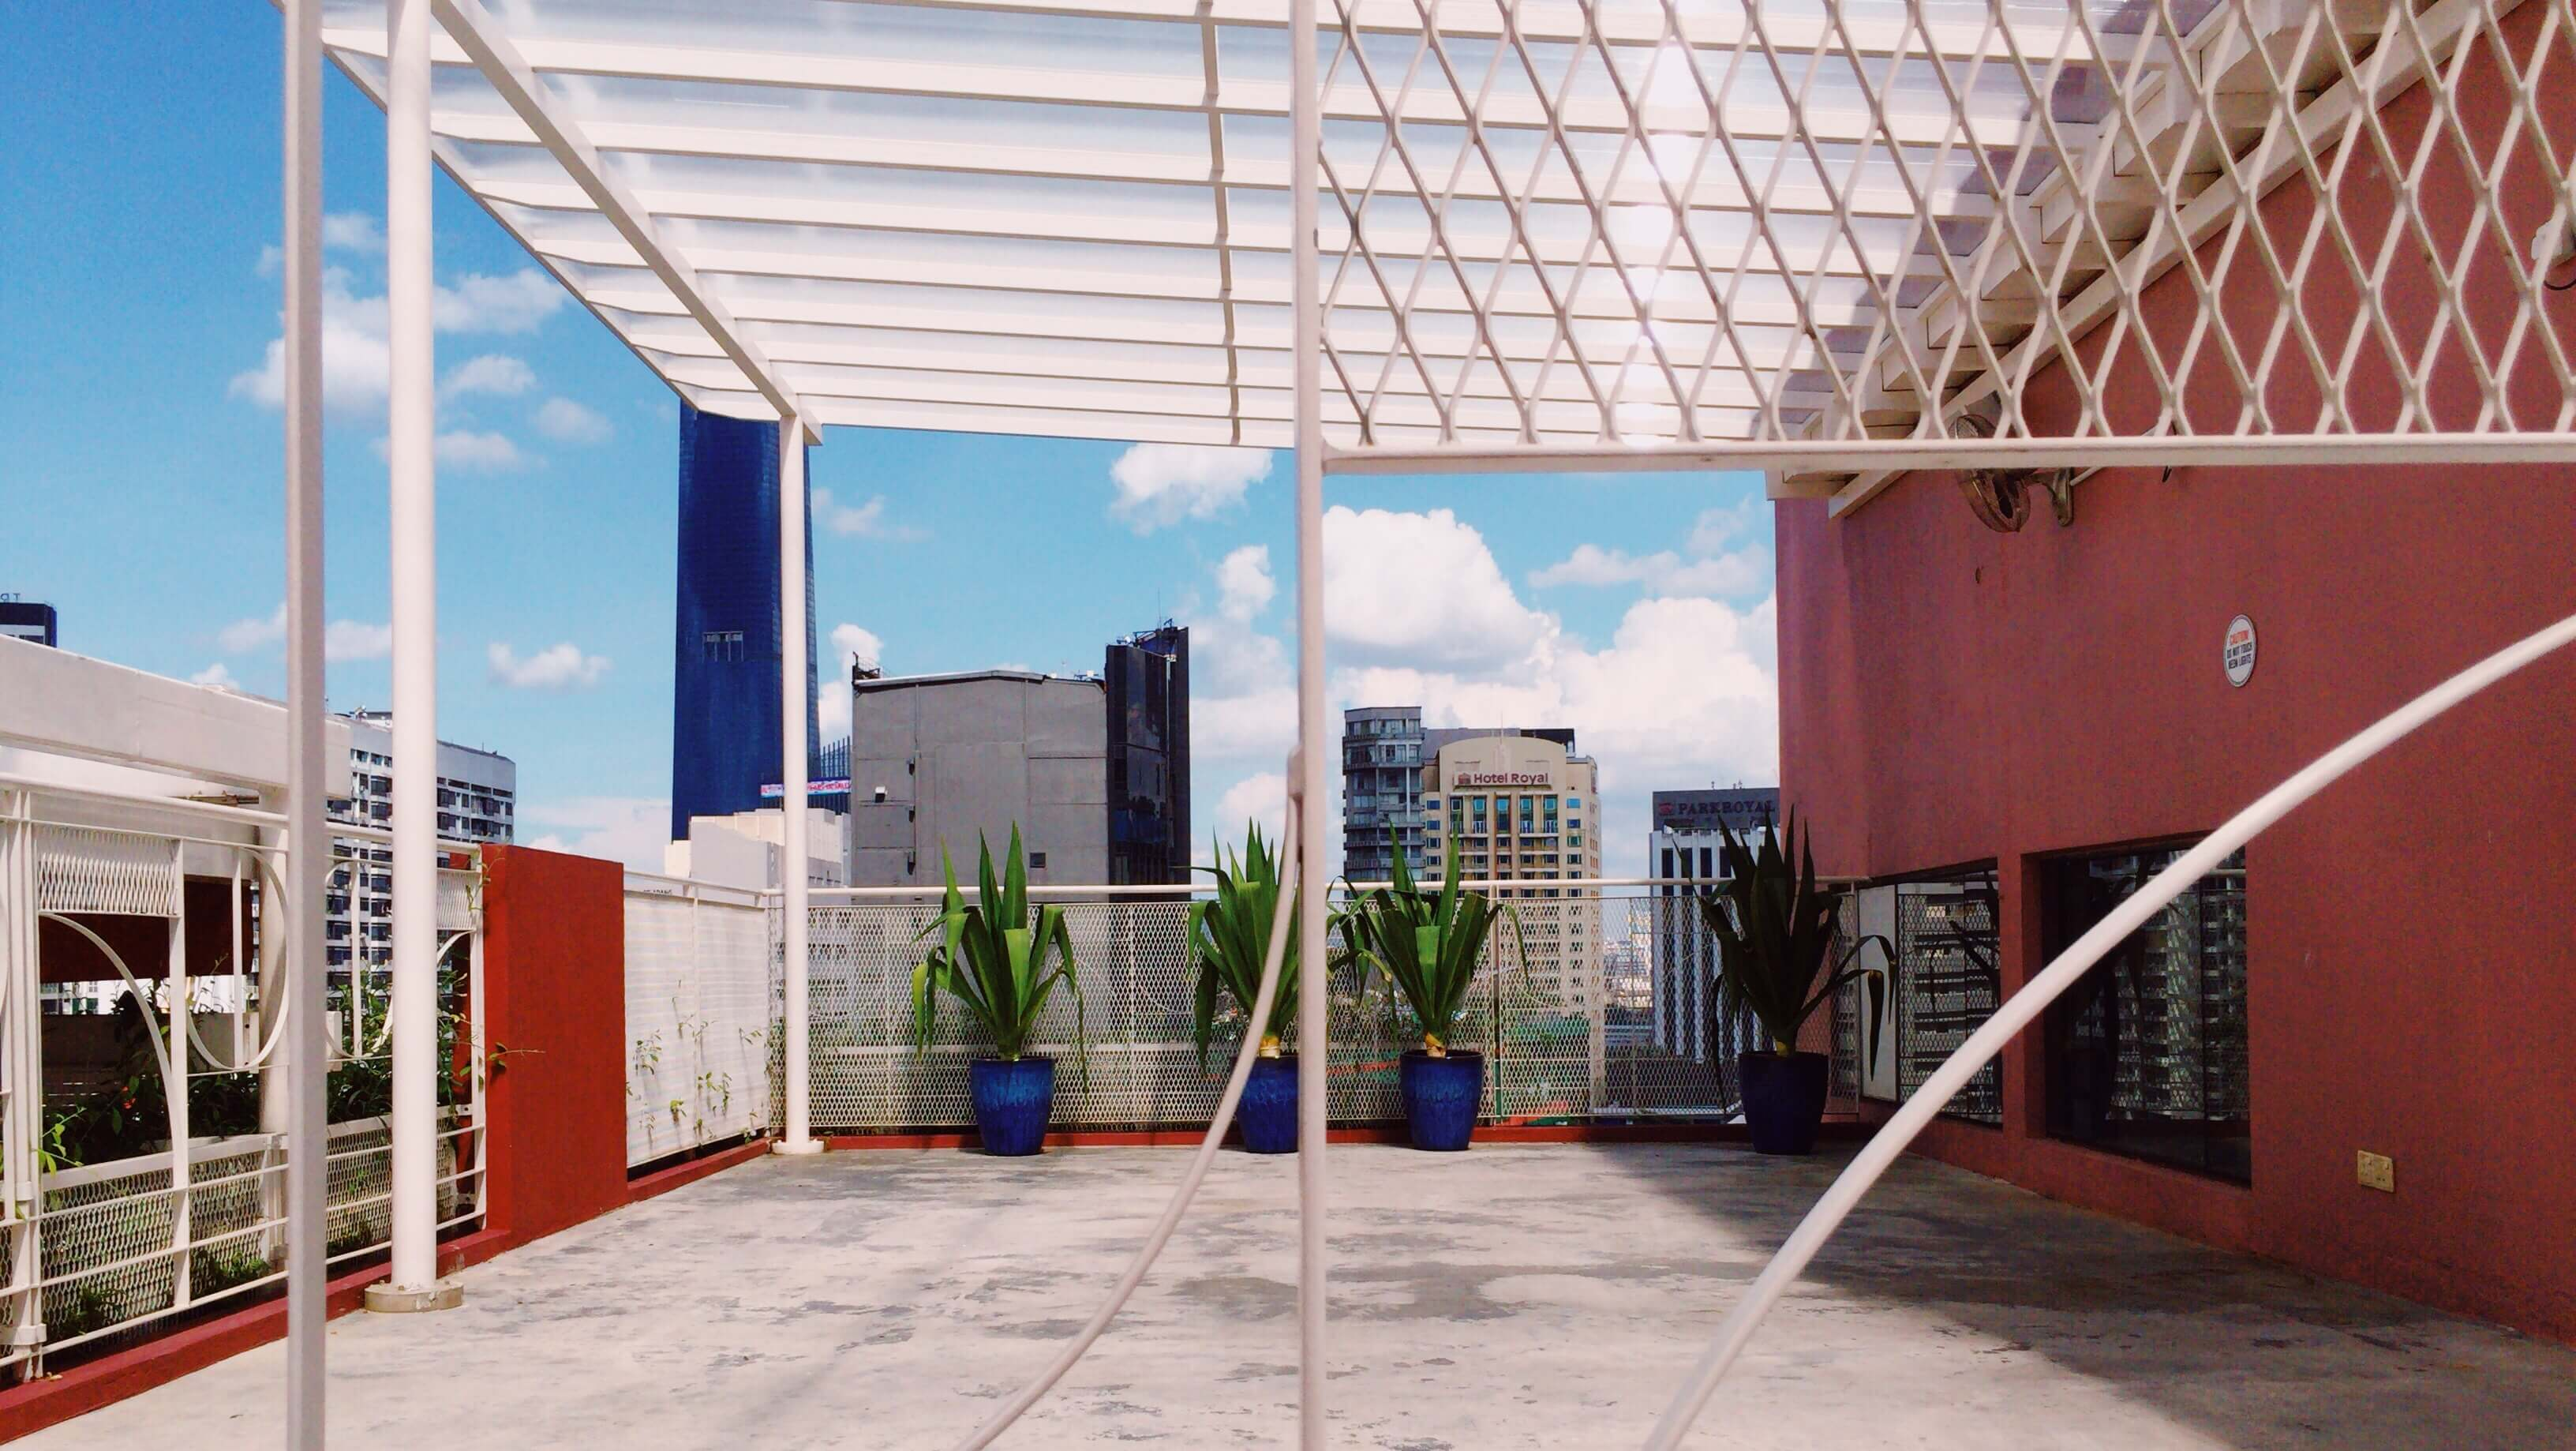 The Rooftop event space with Bukit Bintang city views